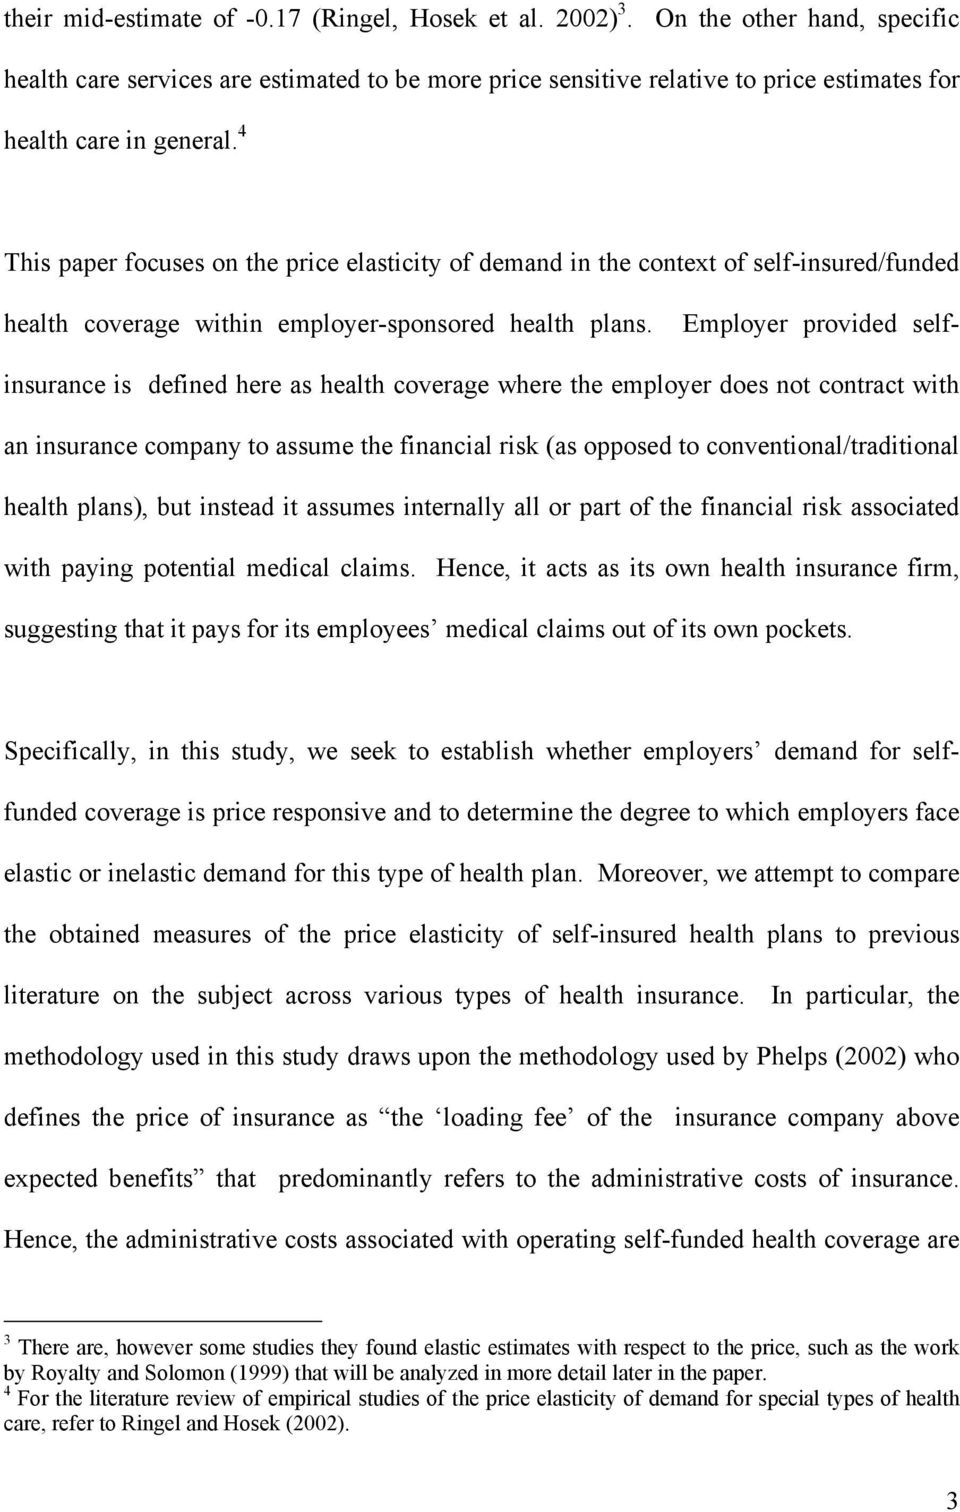 4 This paper focuses on the price elasticity of demand in the context of self-insured/funded health coverage within employer-sponsored health plans.